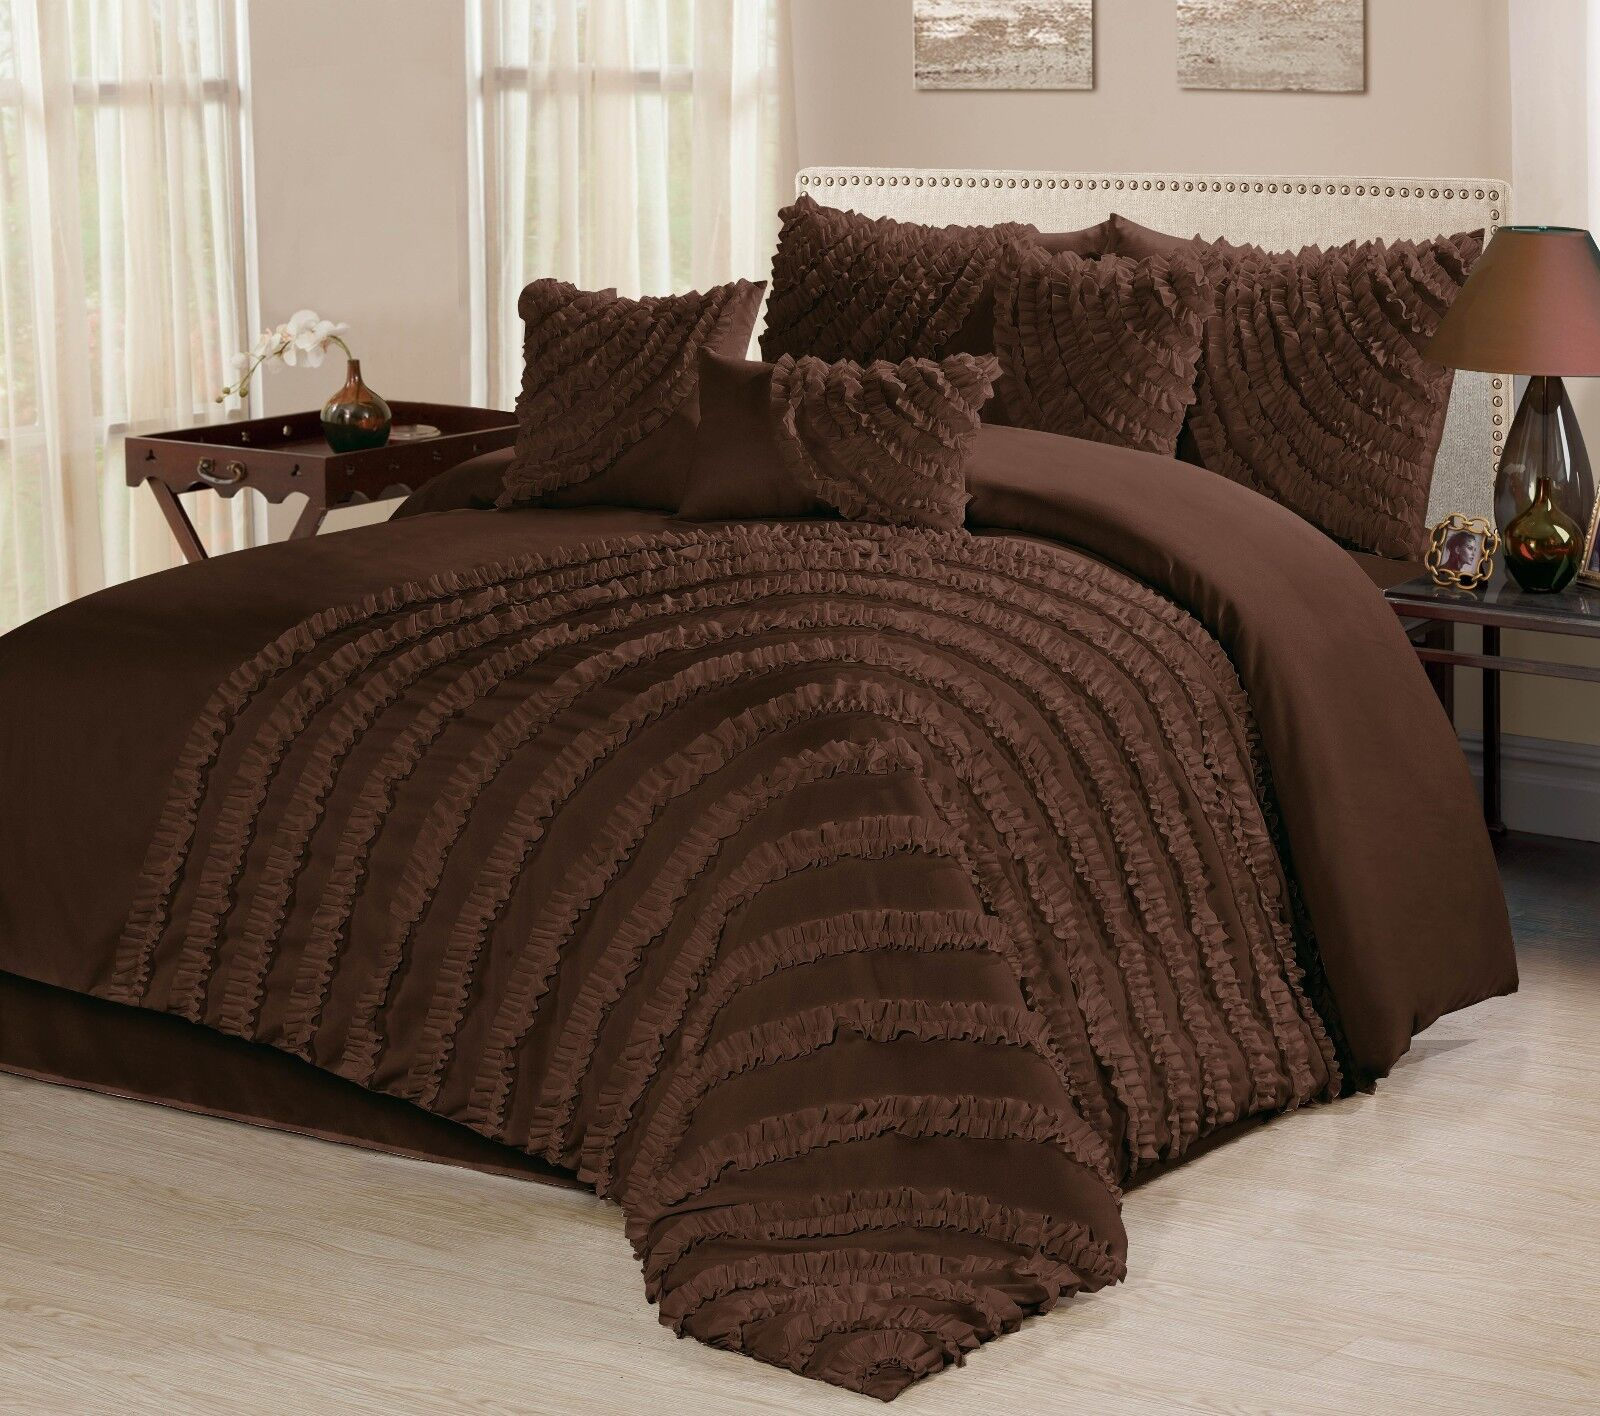 7 Piece Hillary Bed In A Bag Ruffled Comforter Sets Queen King